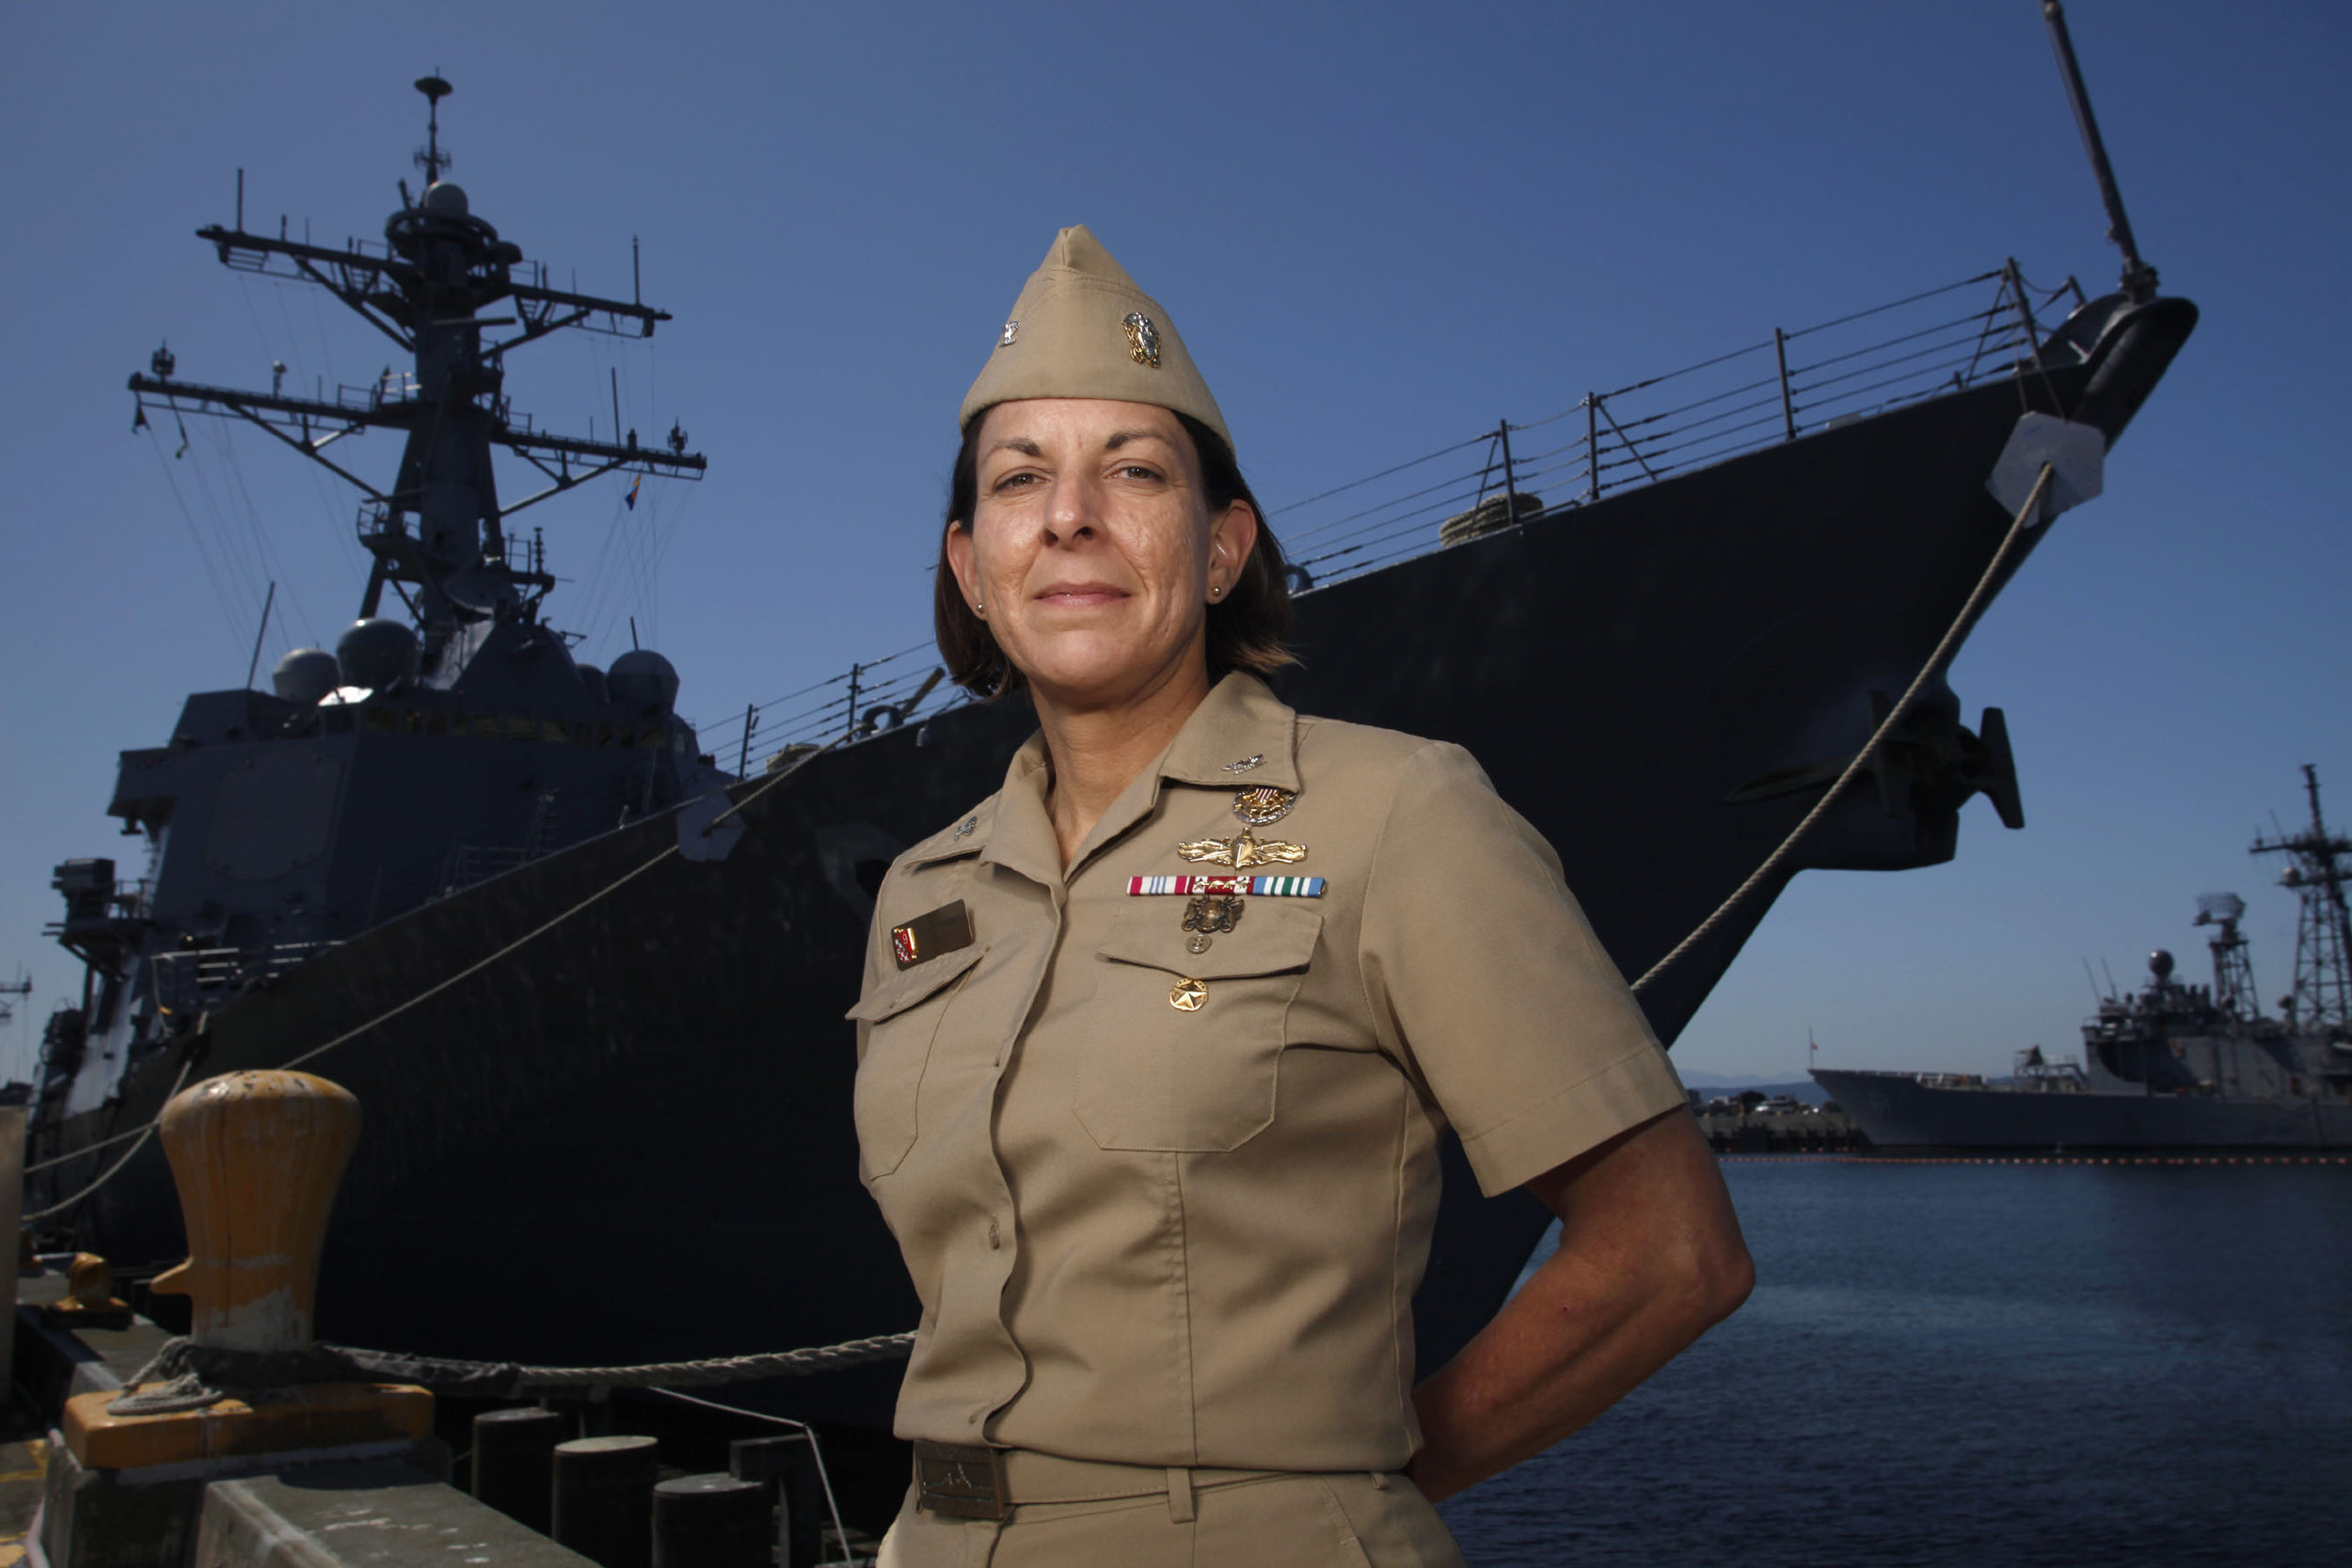 US Navy Captain Carol A. Hottenrott